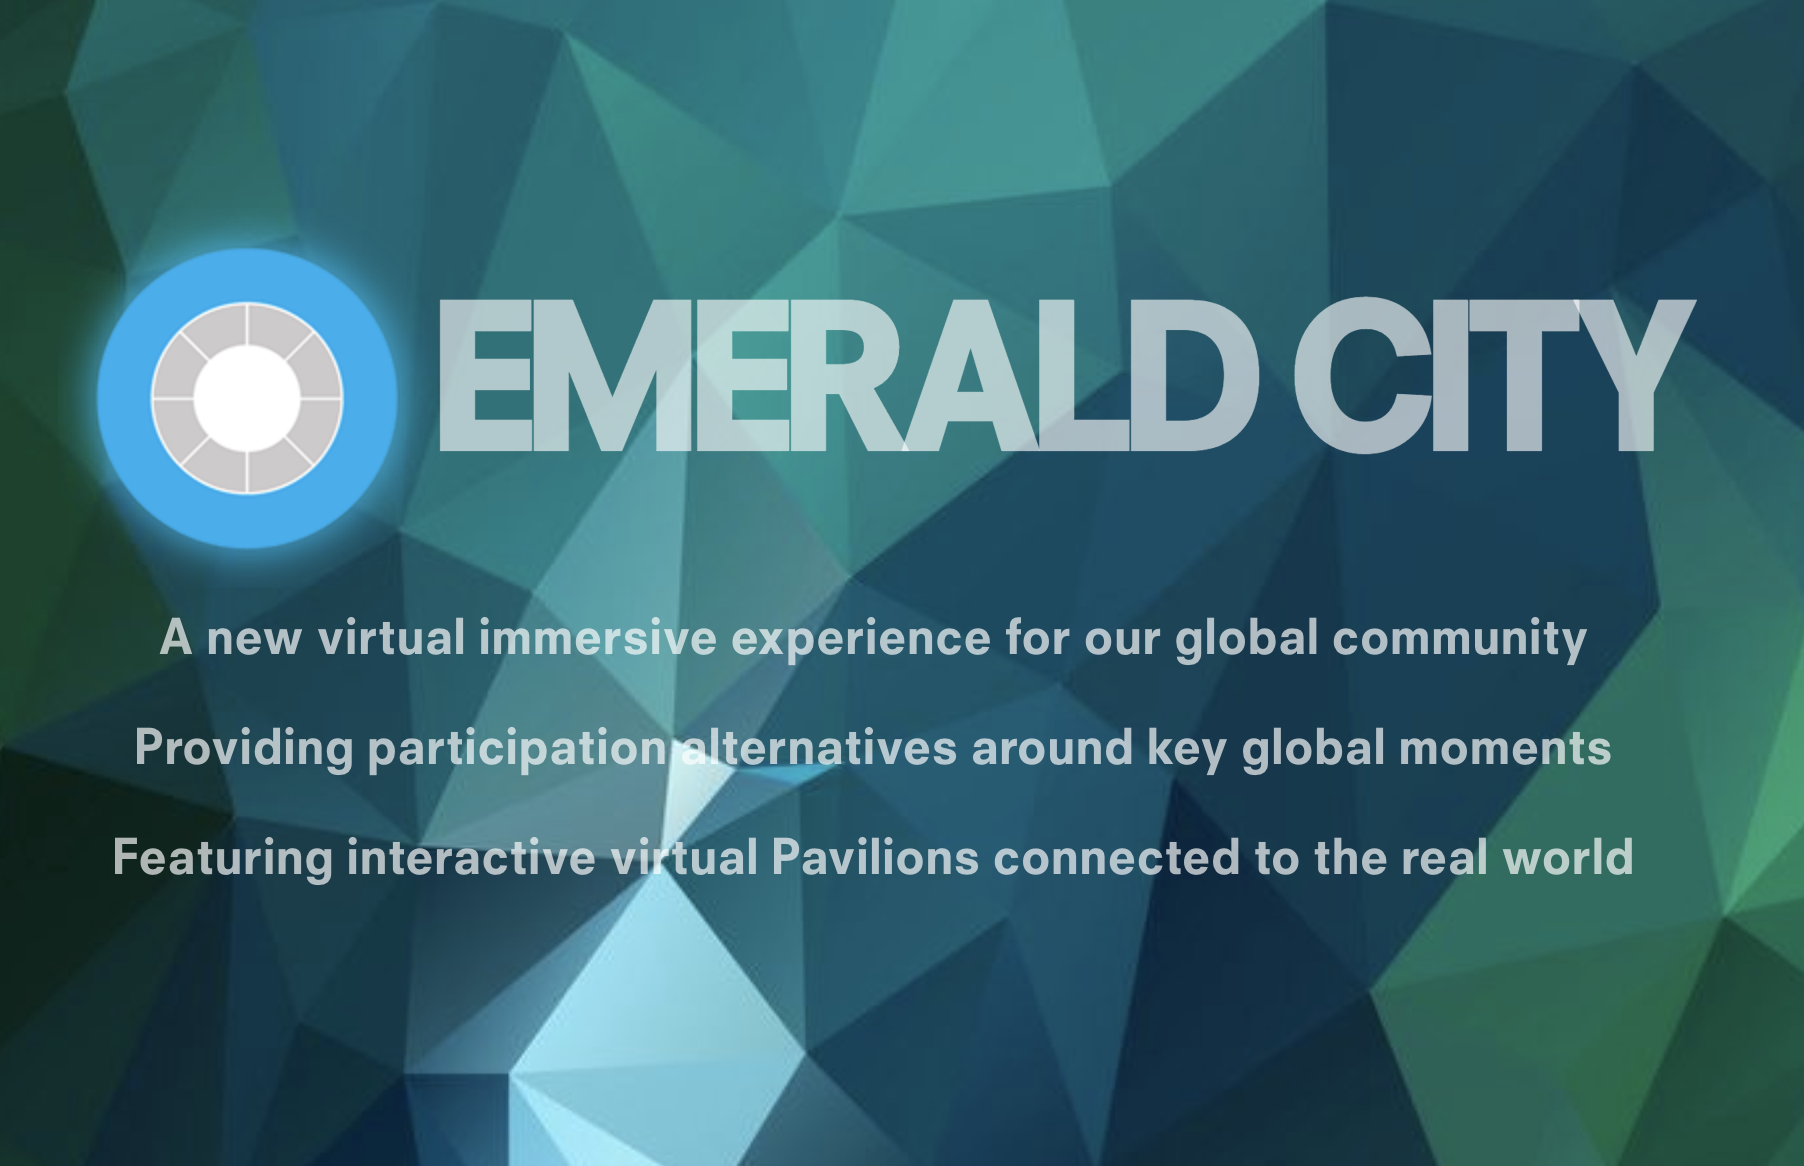 Hub Culture Emerald City Brings Virtualization and Sustainability Together